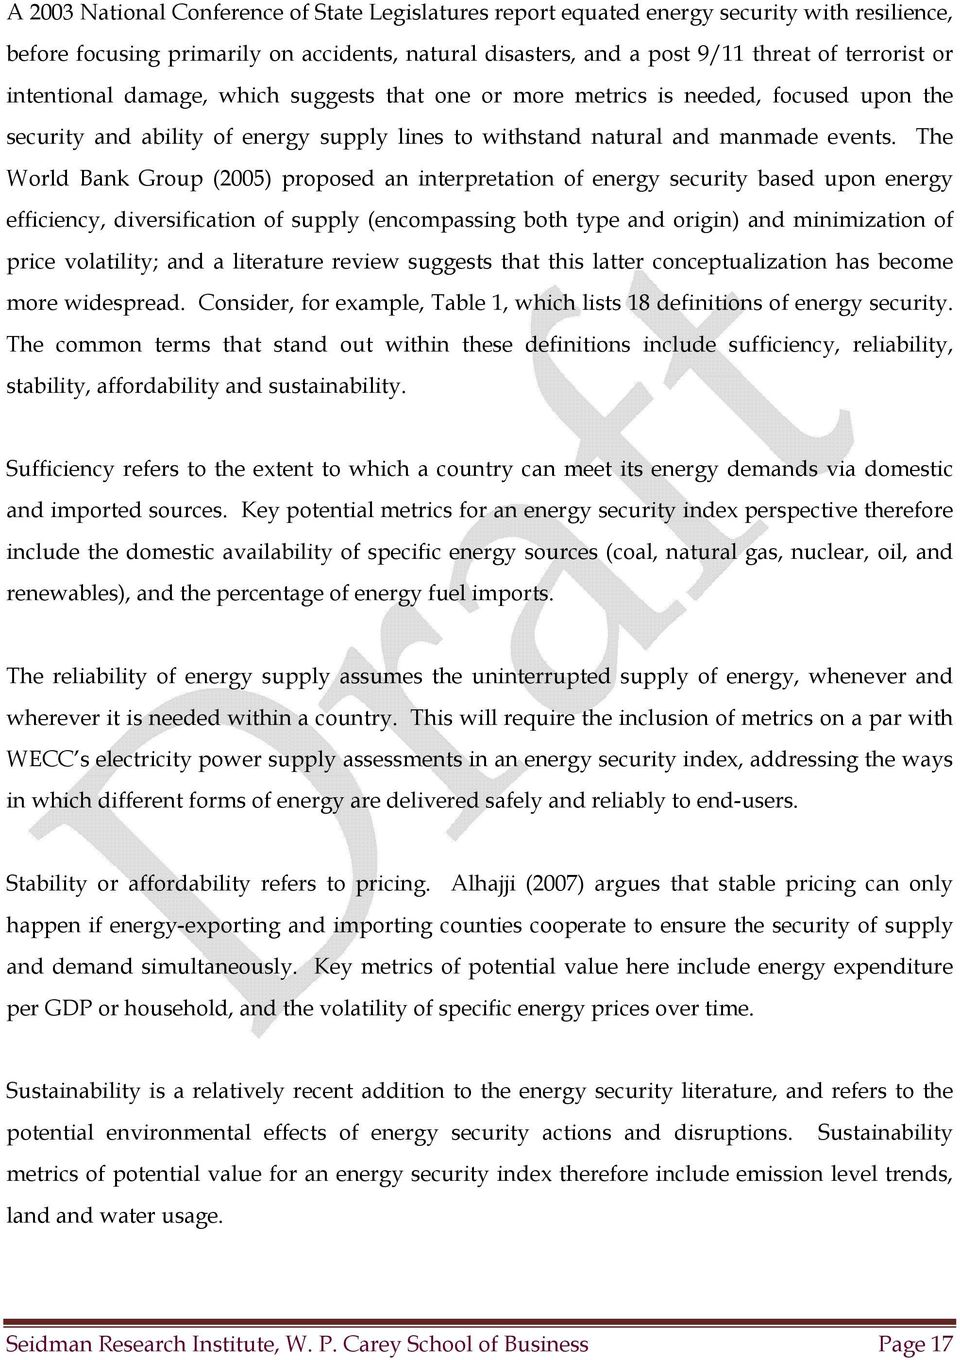 The World Bank Group (2005) proposed an interpretation of energy security based upon energy efficiency, diversification of supply (encompassing both type and origin) and minimization of price